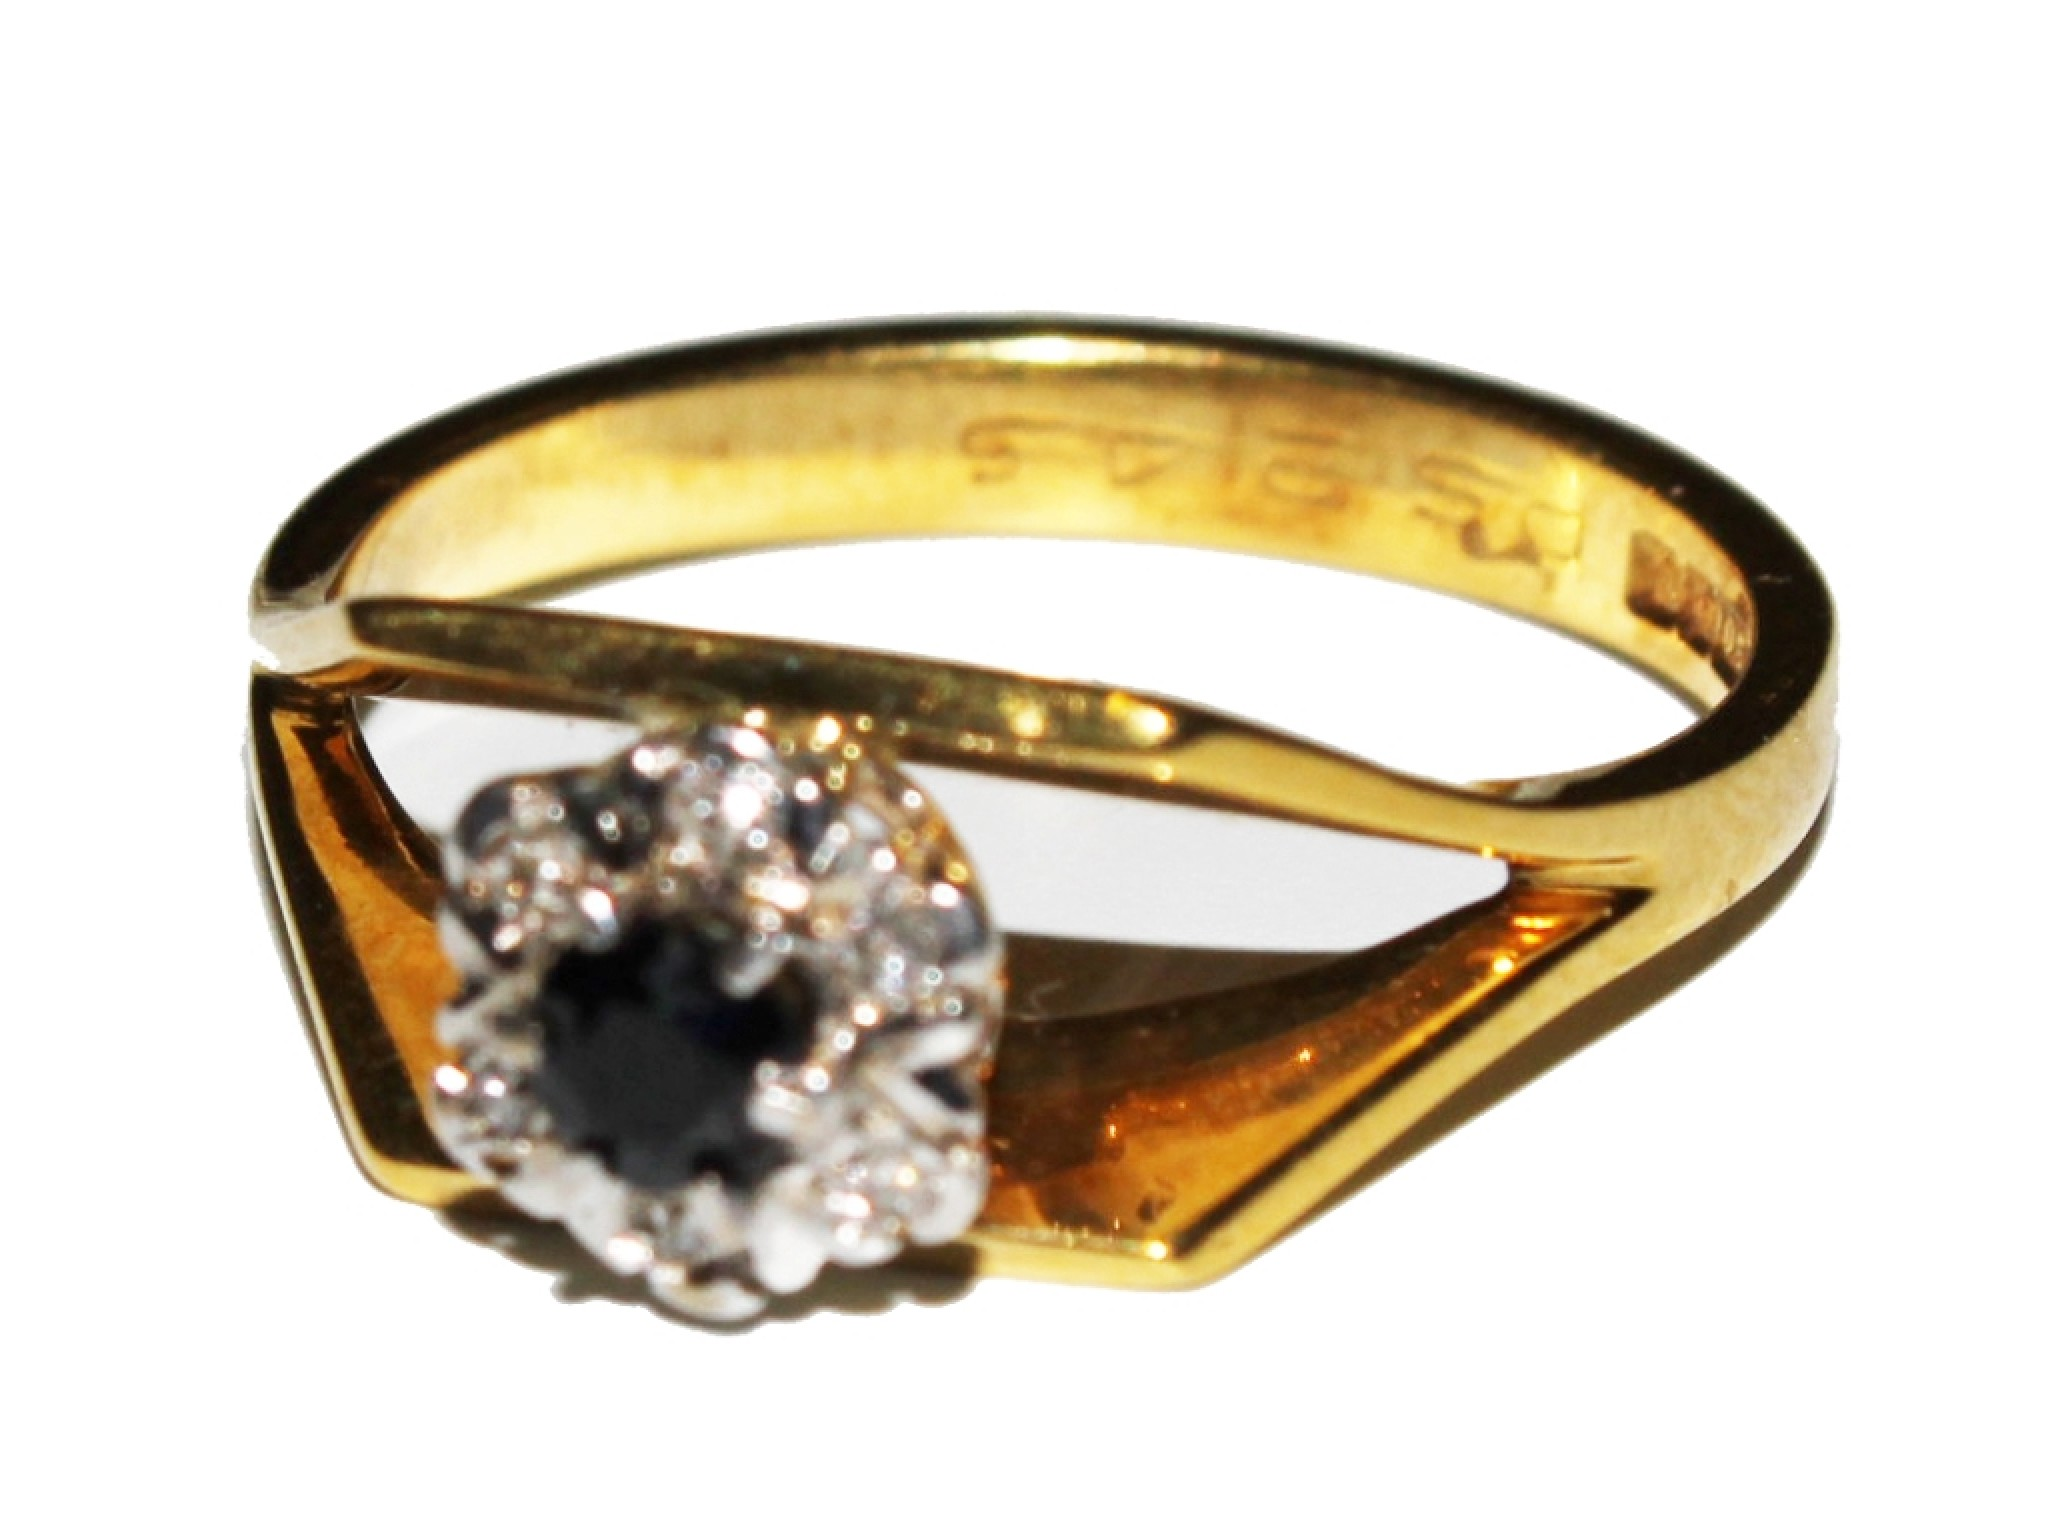 A diamond and sapphire cluster ring set in 18 carat gold